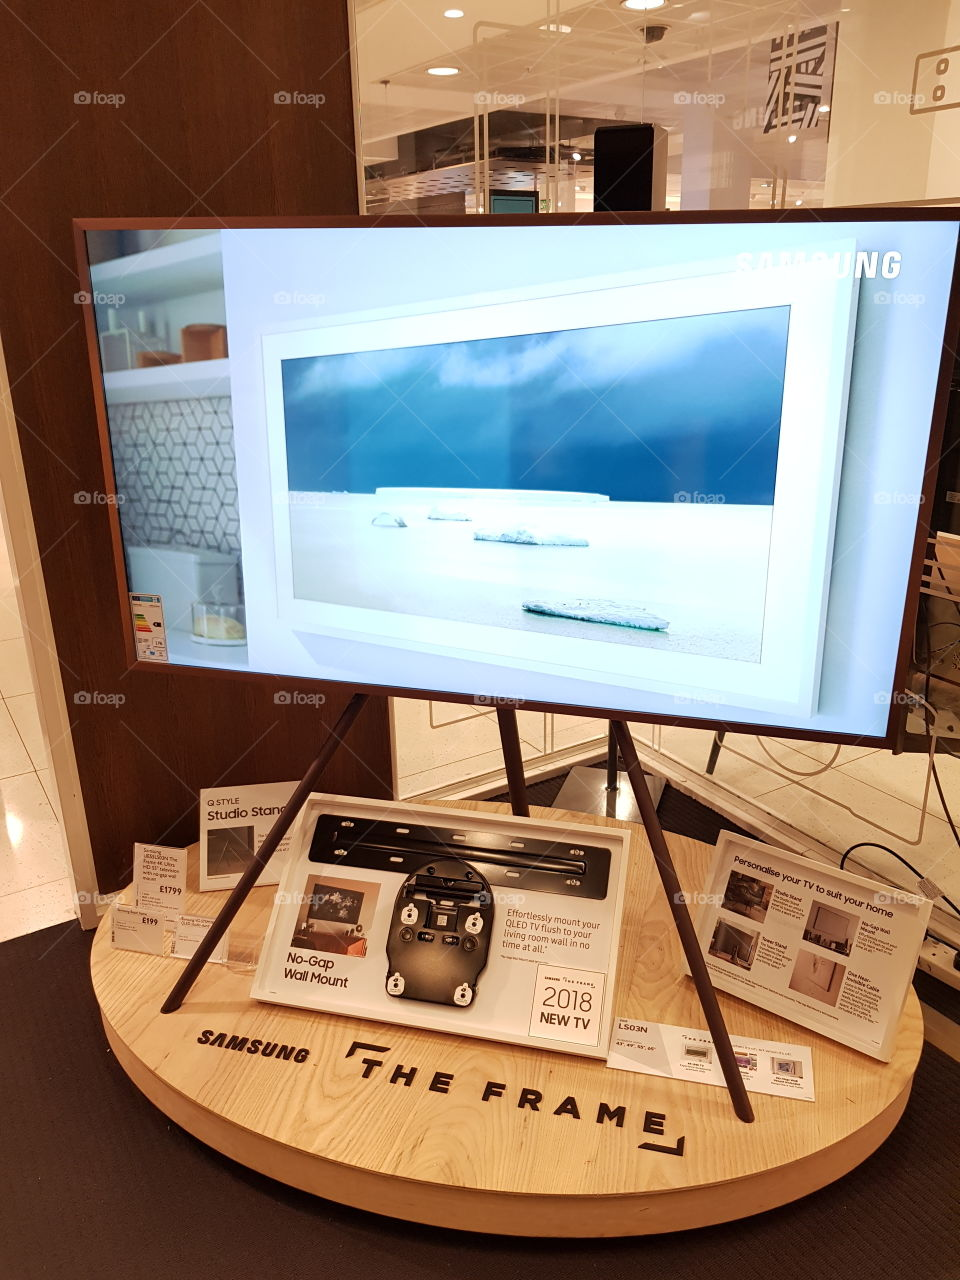 Samsung The Frame TV installation at Peter Jones Sloane square with Copper bezel